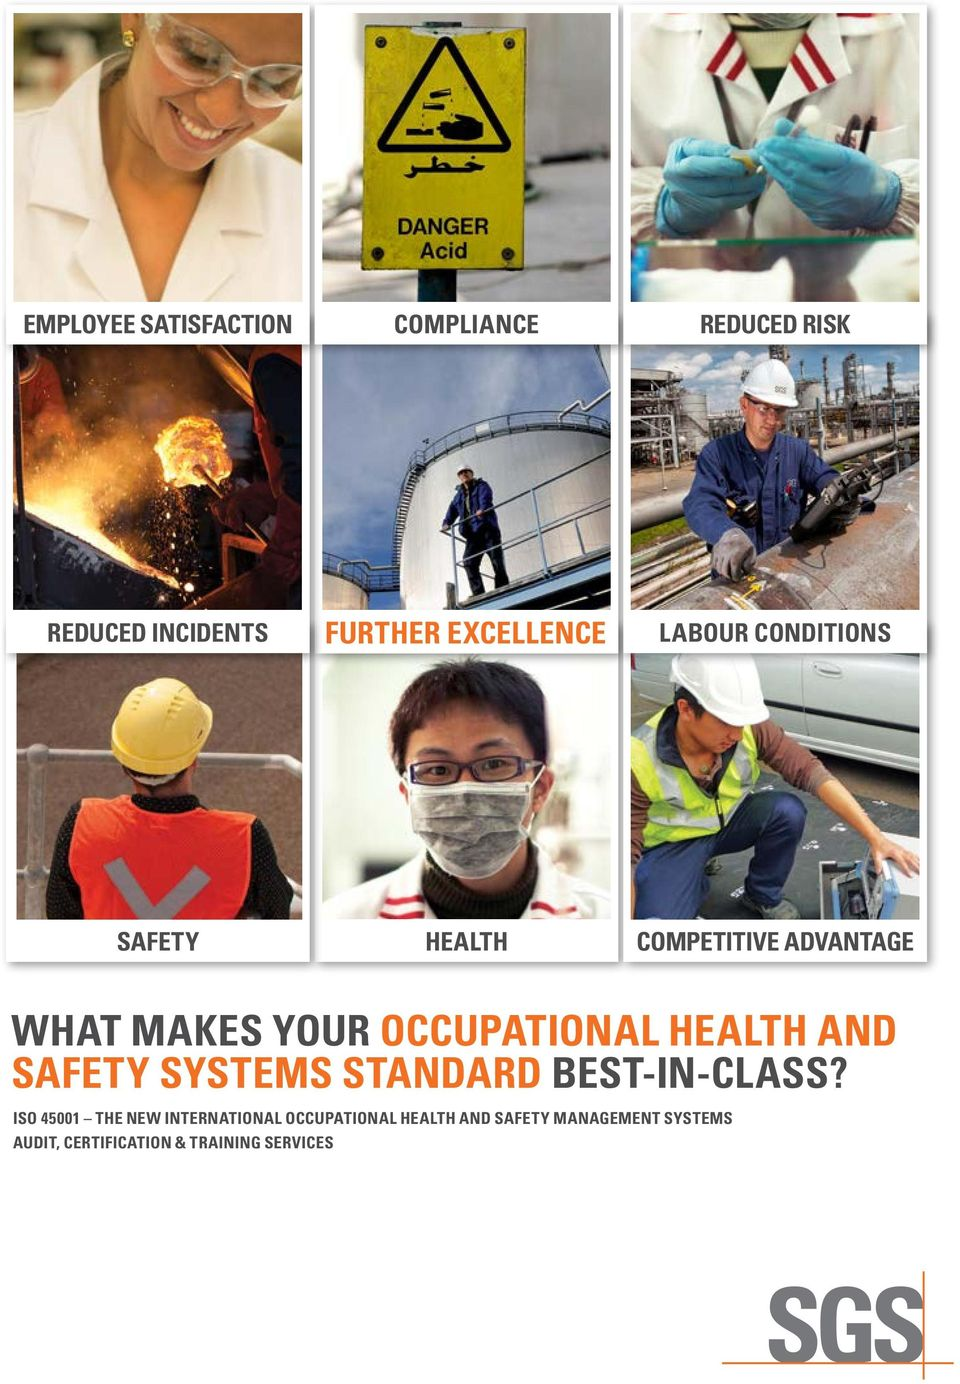 HEALTH AND SAFETY SYSTEMS STANDARD BEST-IN-CLASS?